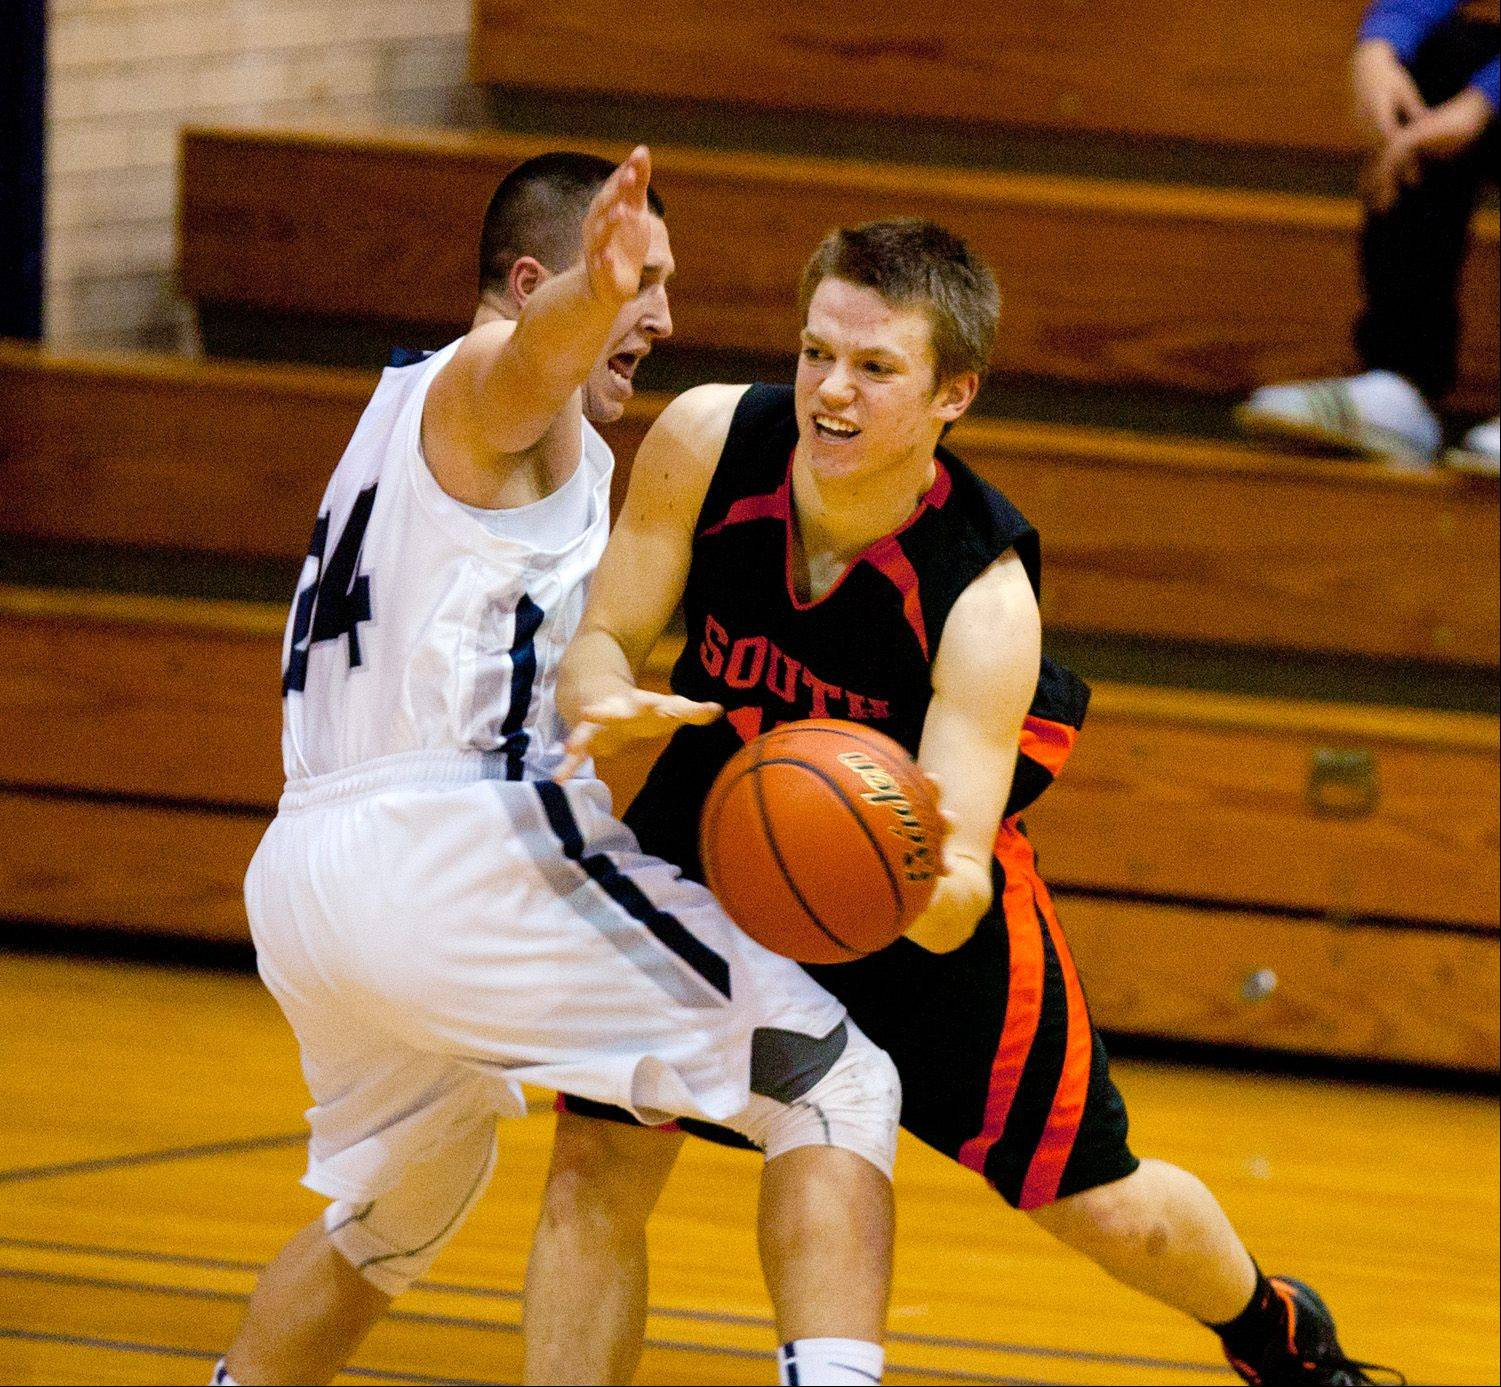 Images: Wheaton Warrenville South vs. Addison Trail, boys basketball